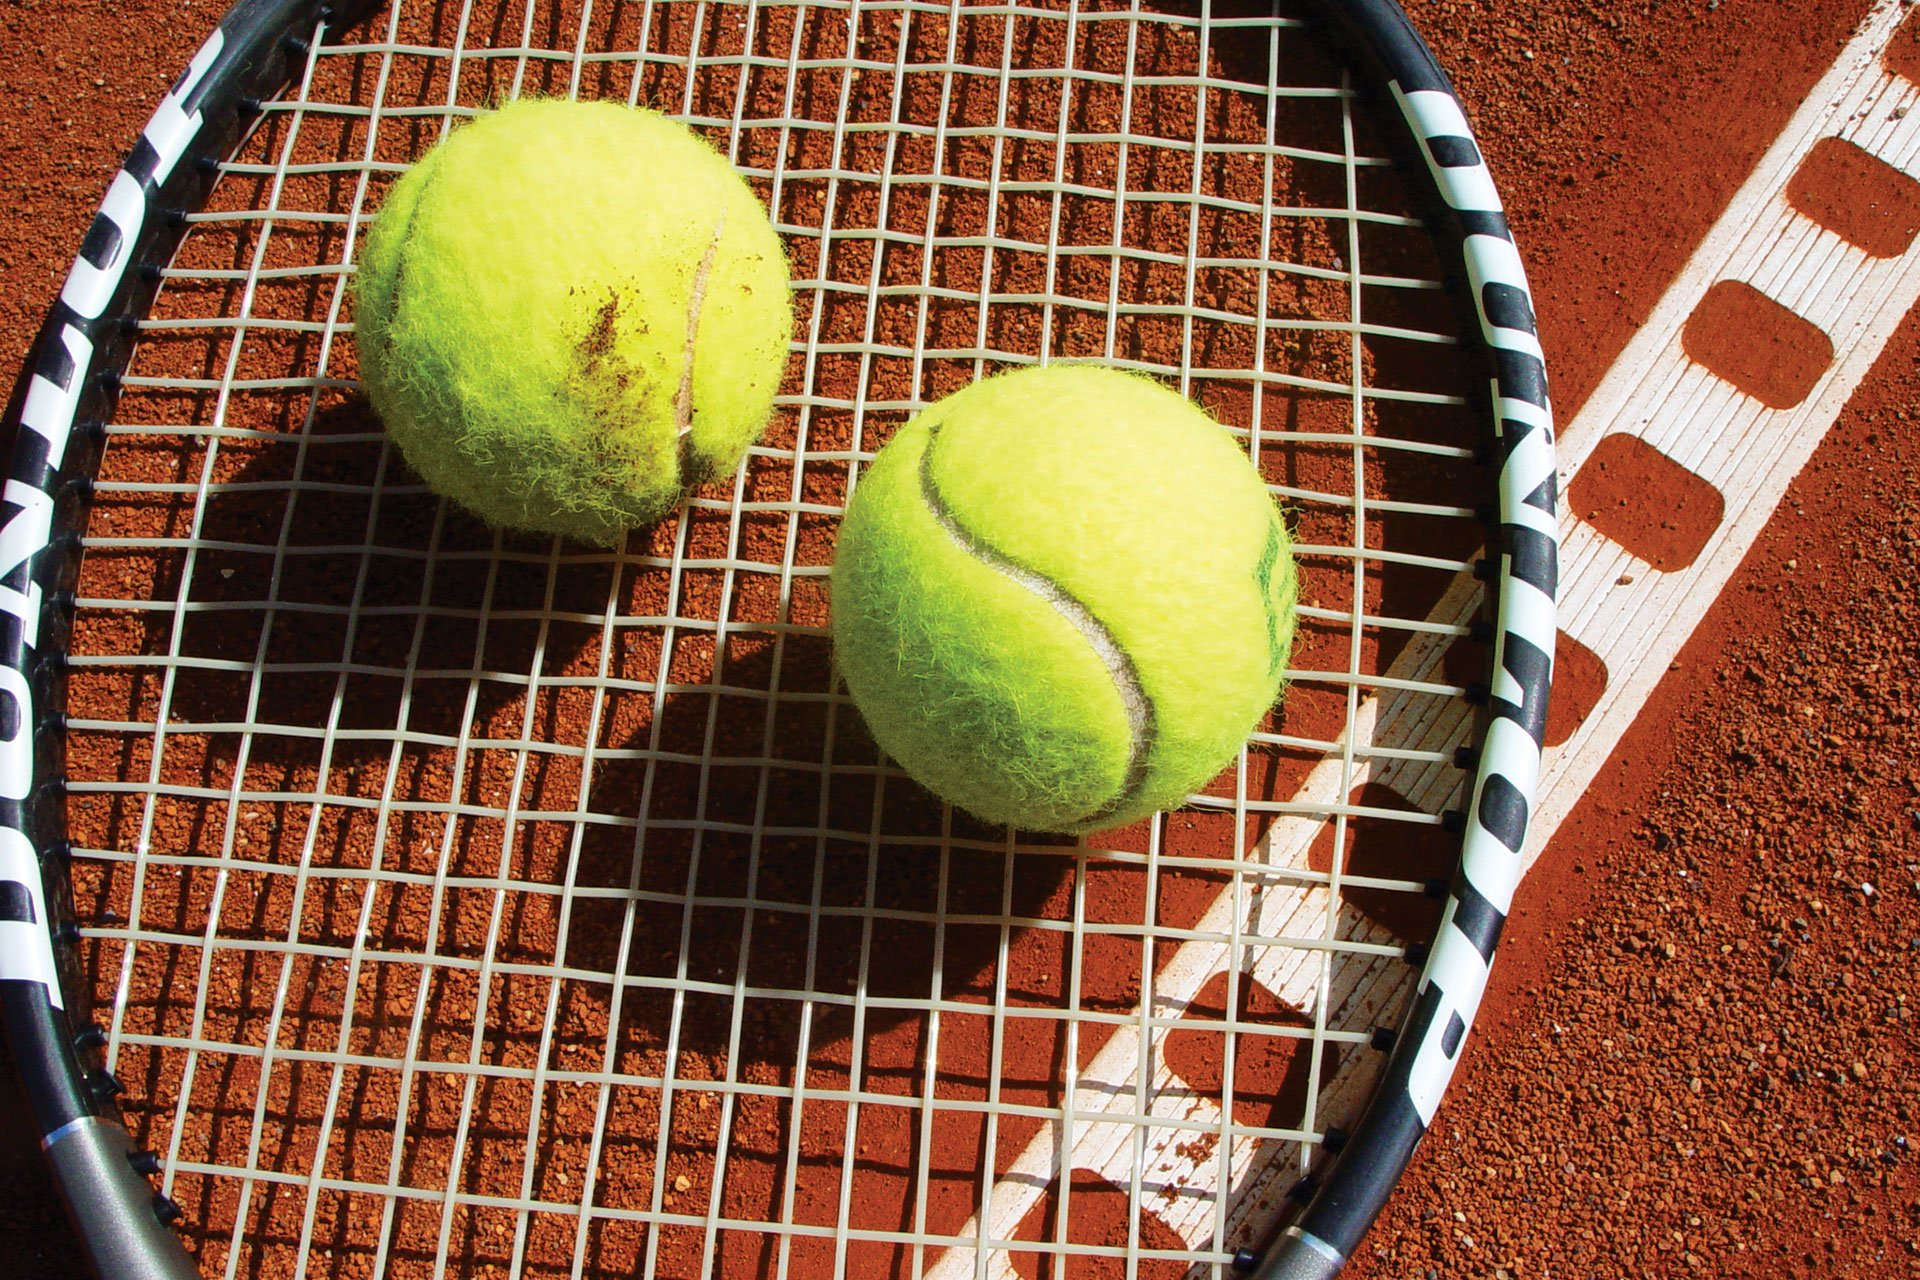 Glendale Sports Center - Tennis